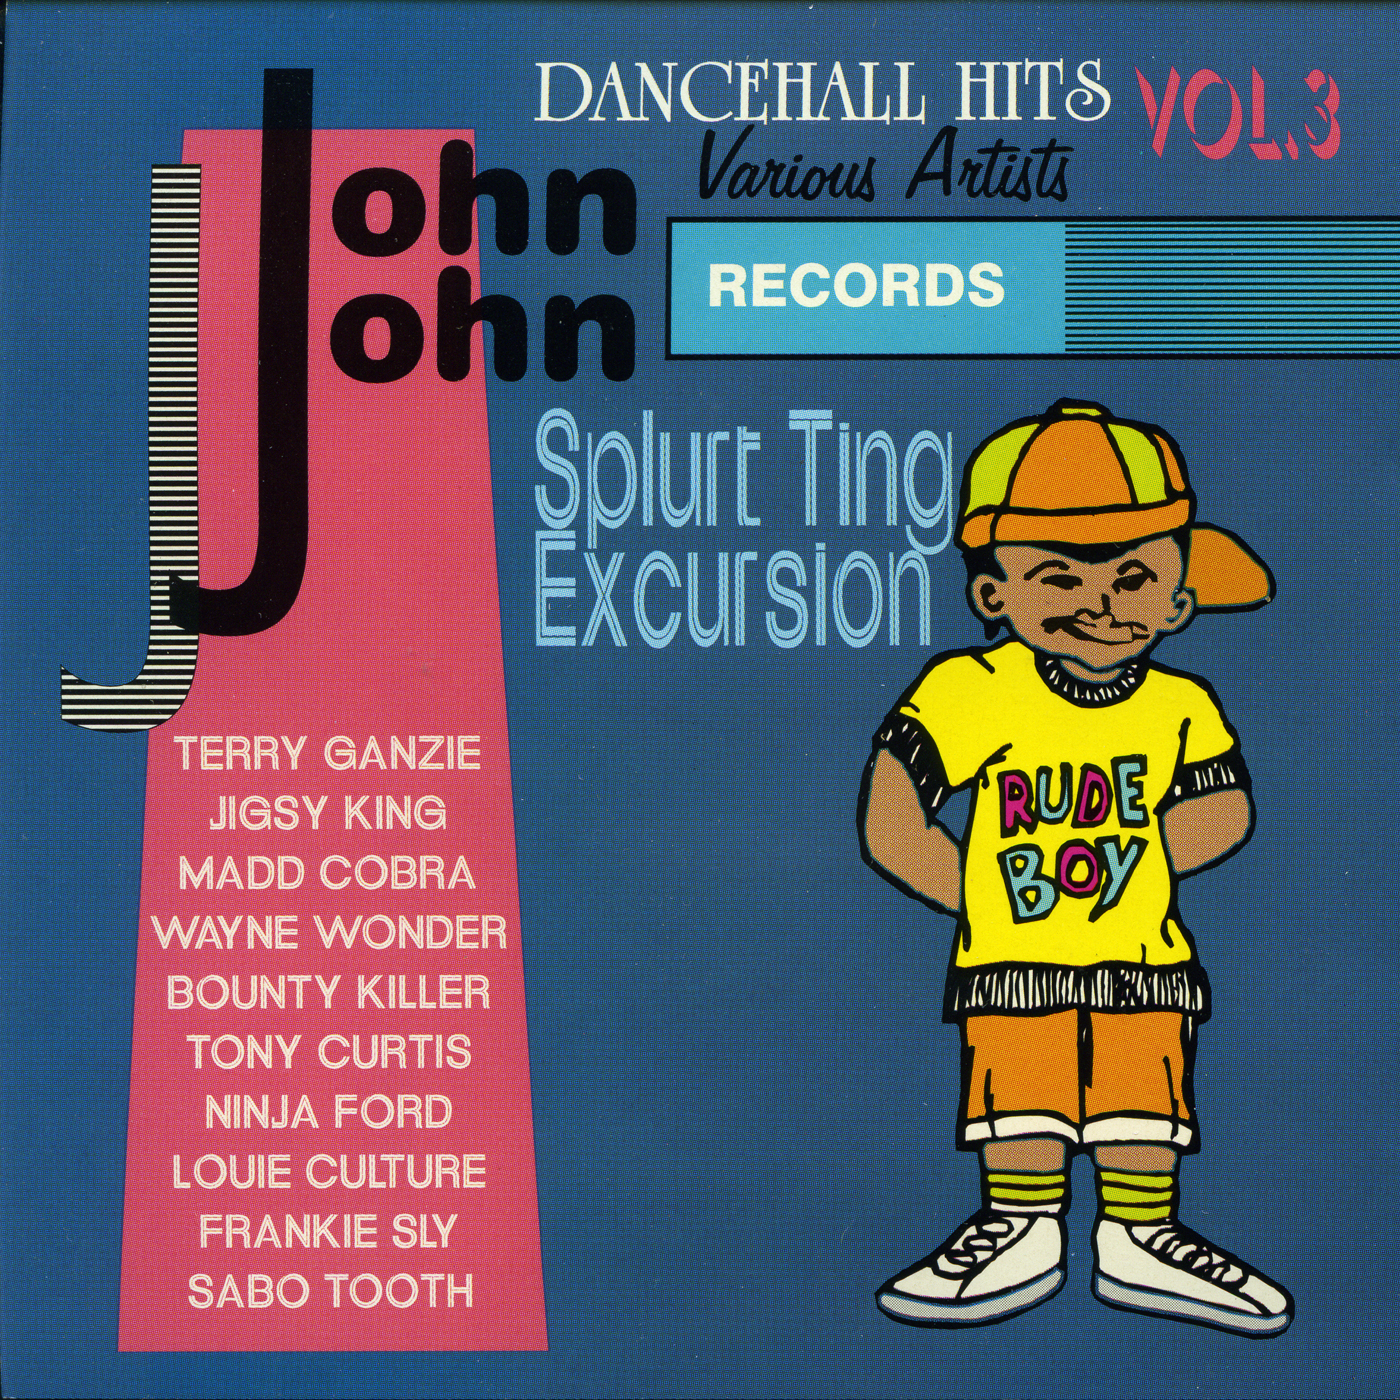 John John Dancehall Hits Vol. 3 – Splurt Ting Excursion